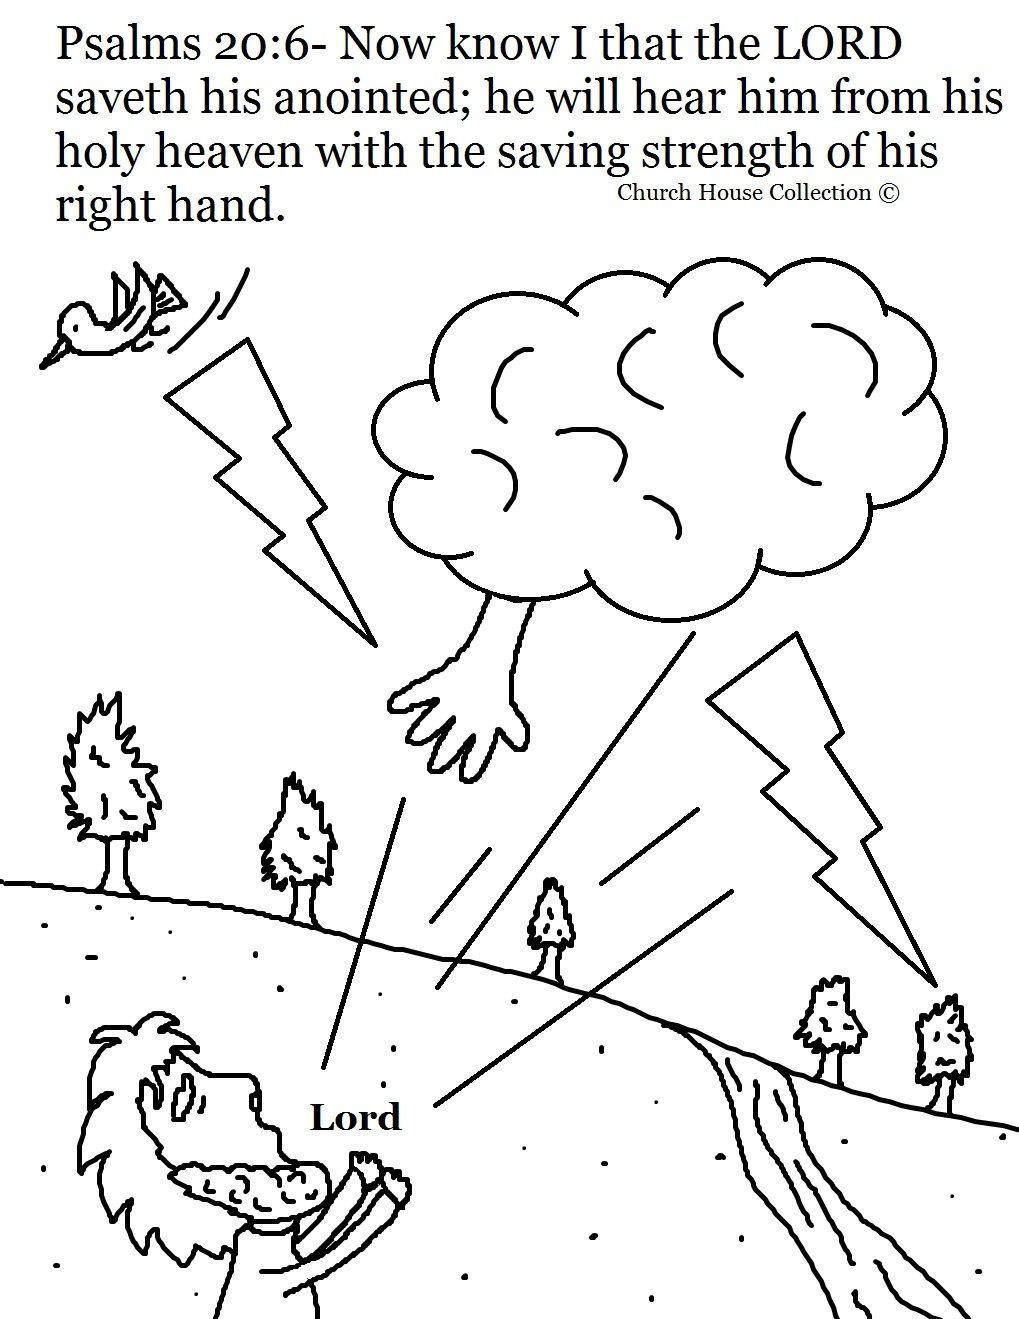 psalm 23 printable coloring pages - 23rd psalm coloring sheet coloring pages